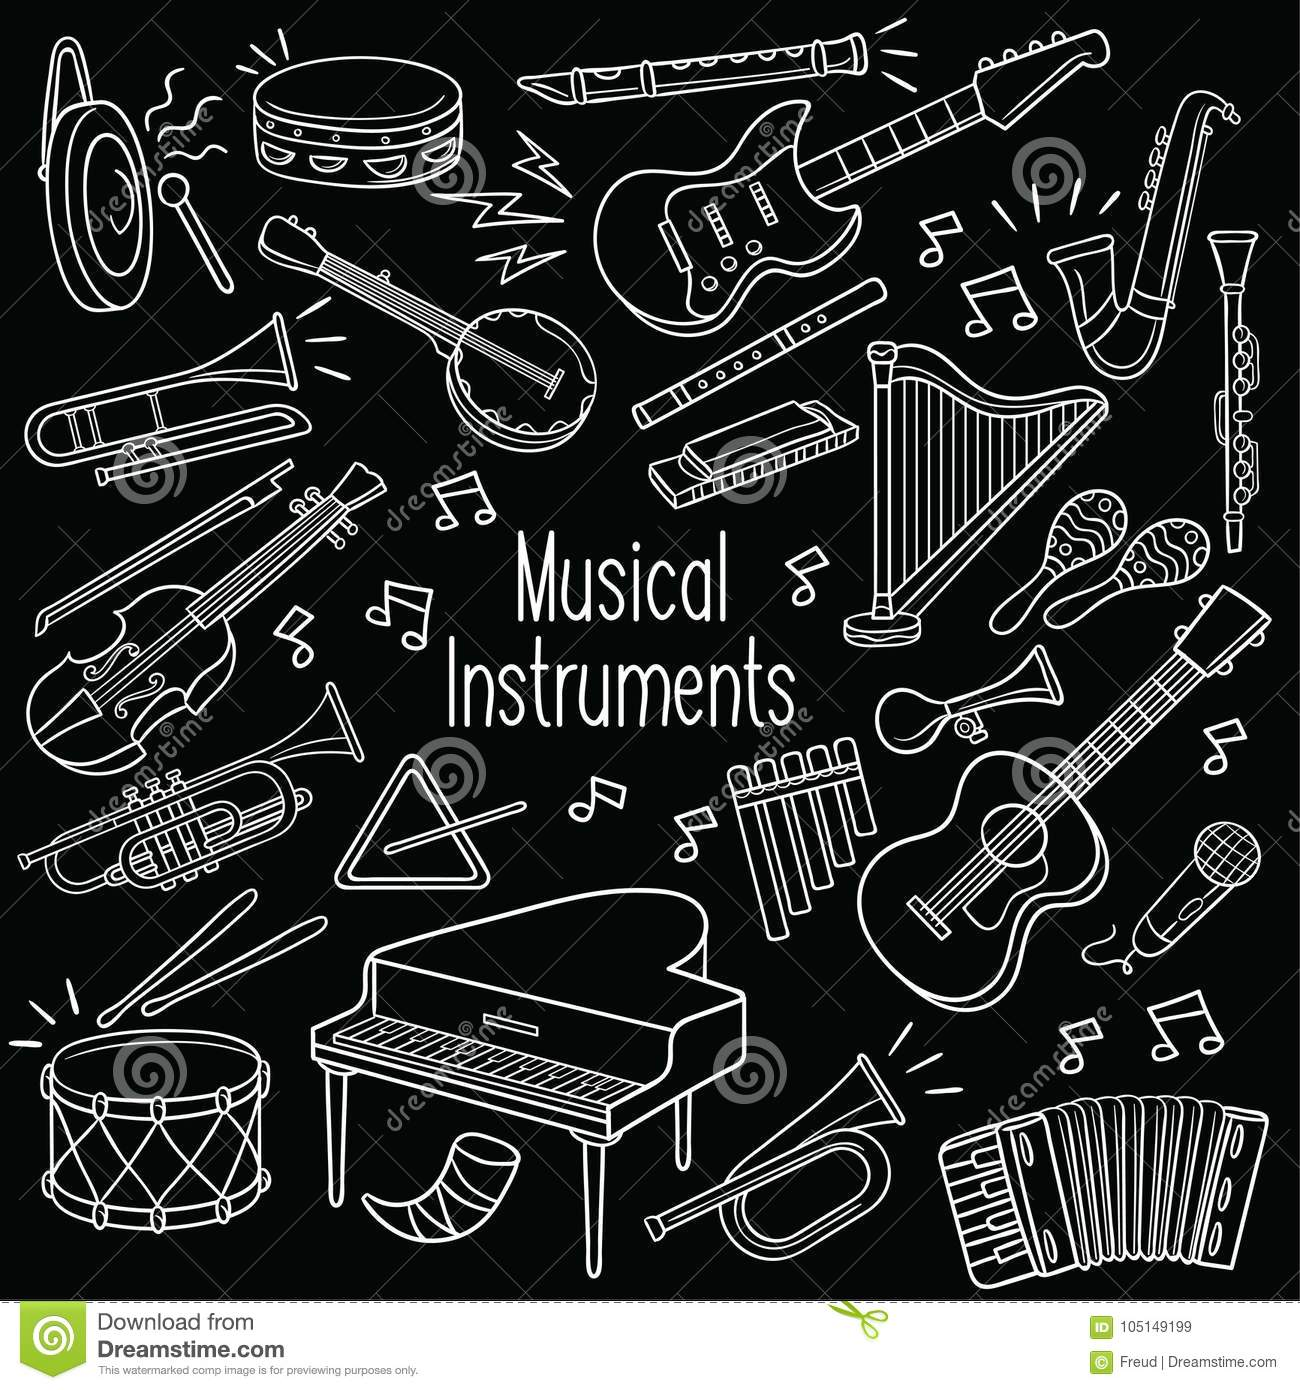 Doodle musical instruments in chalkboard